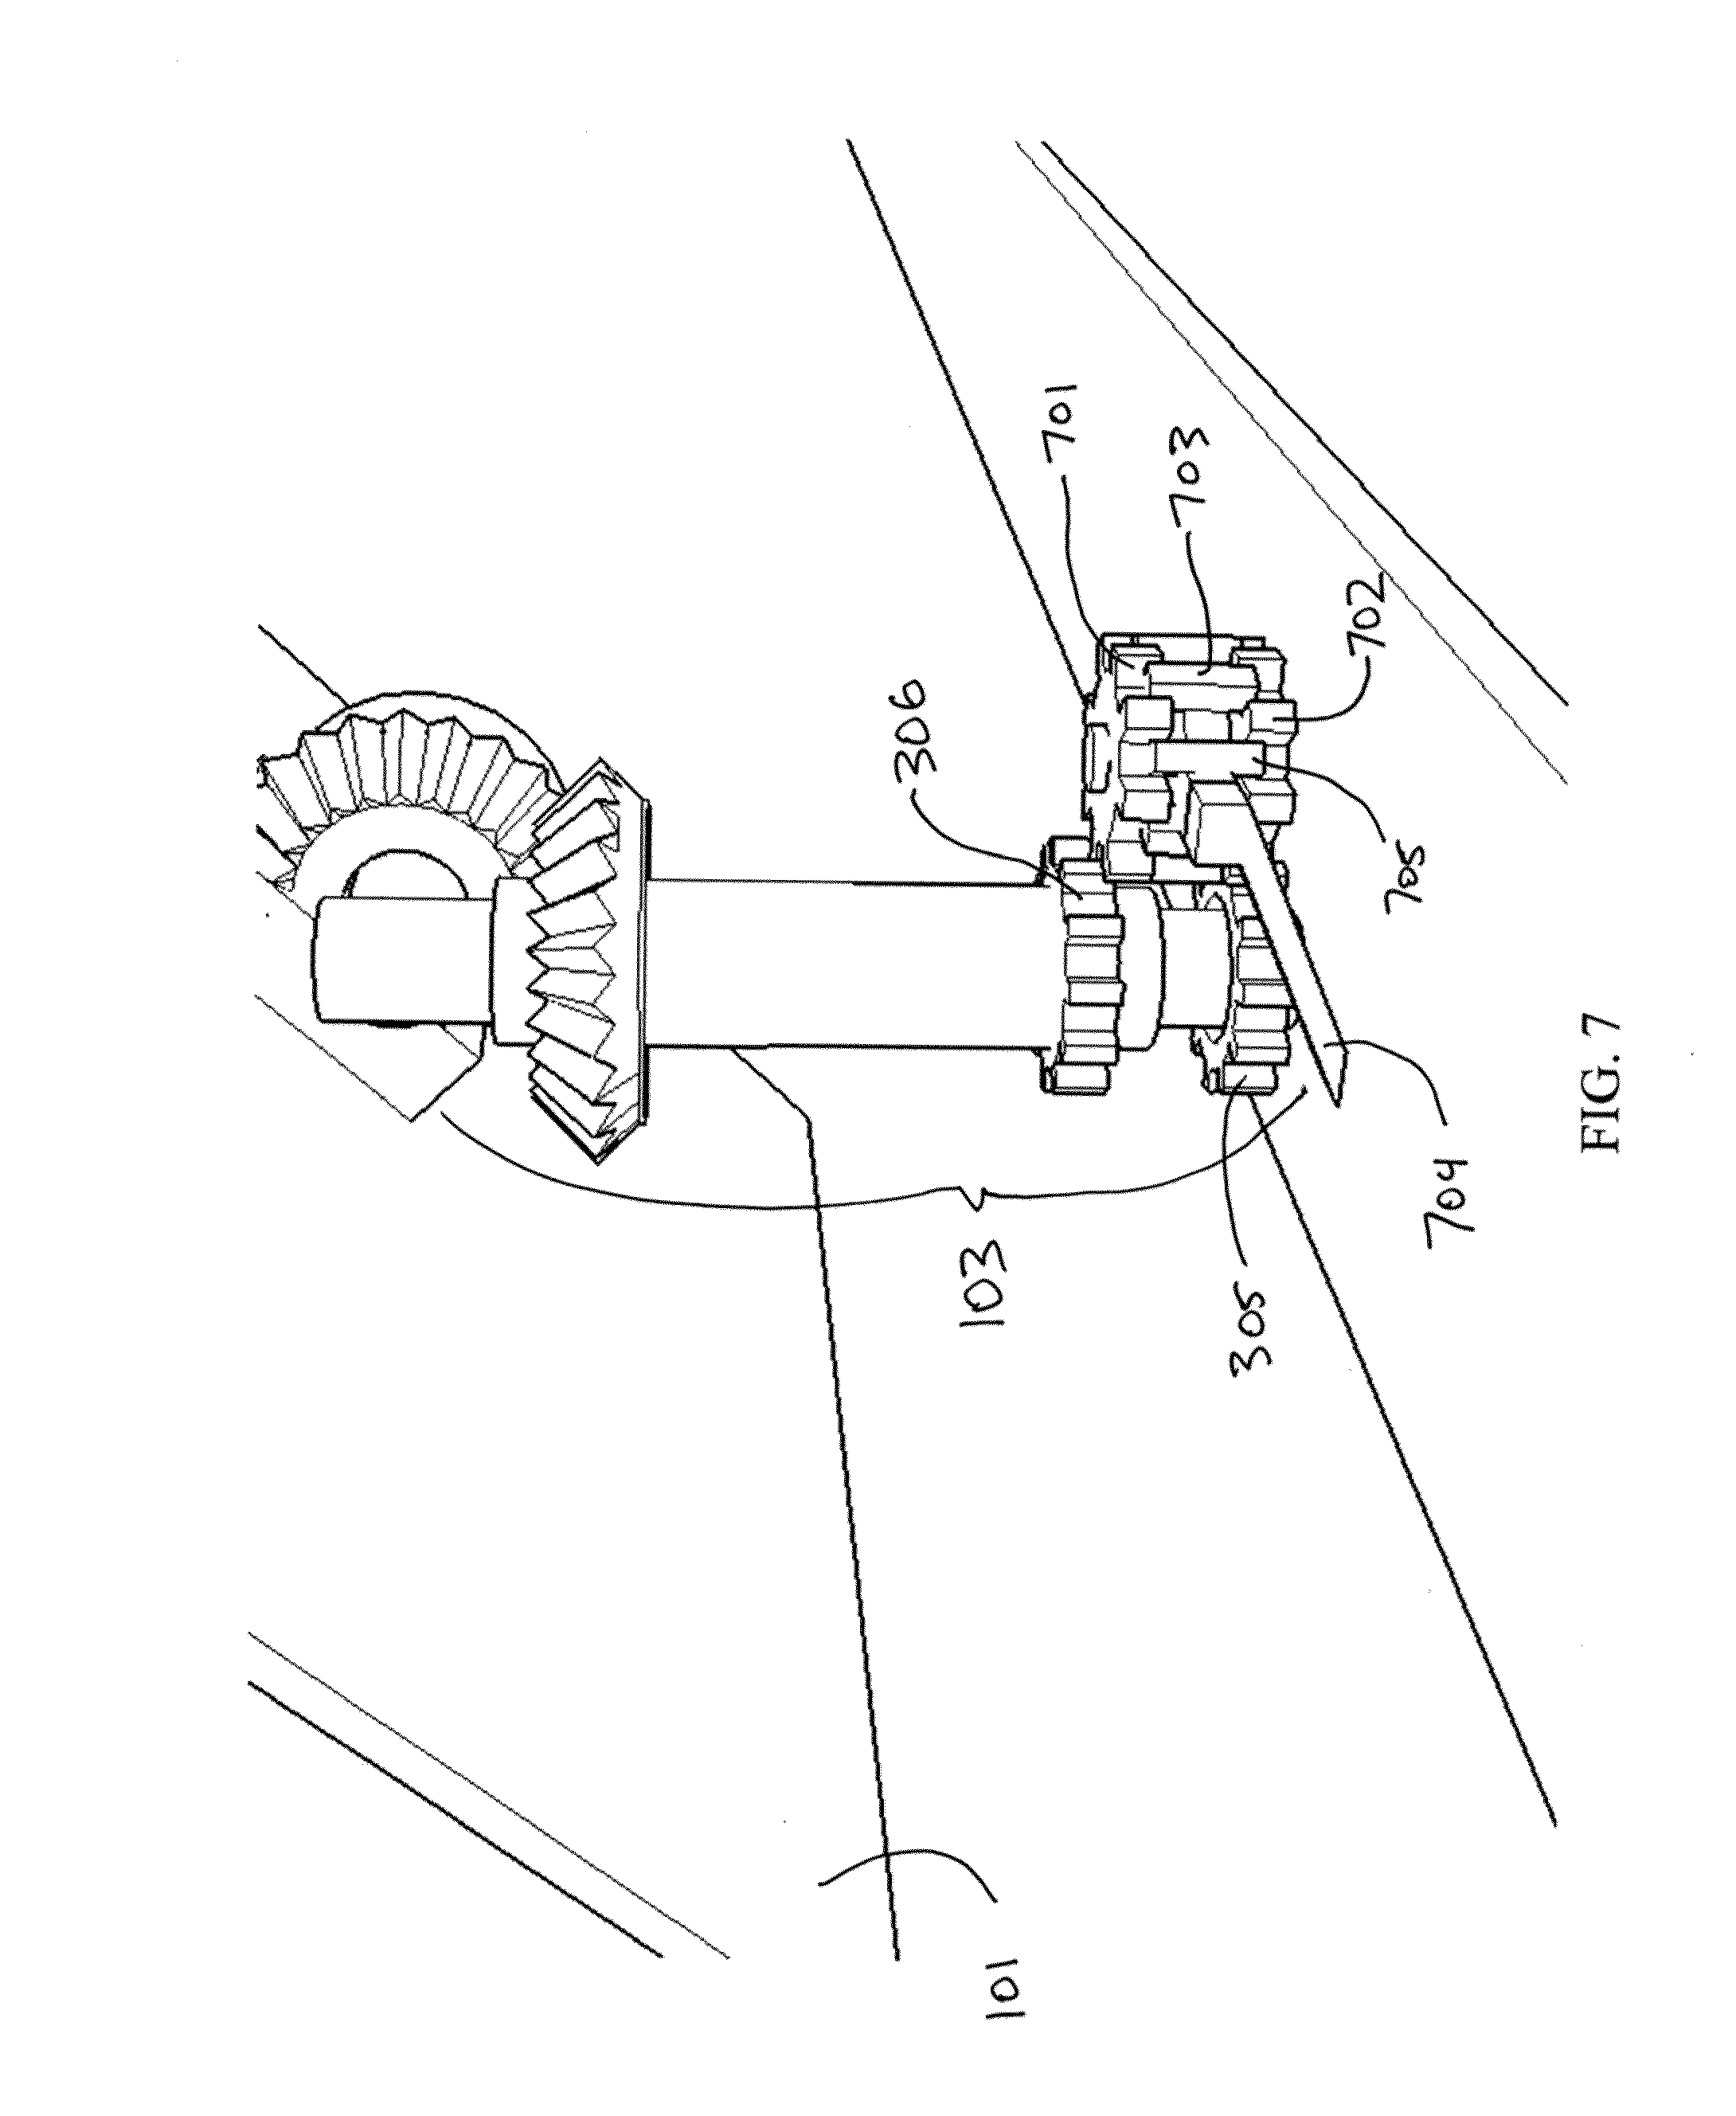 Patent Us20110240007 Heliostat Repositioning System And Method Buzzer Symbol Circuit Diagram Furthermore Electromag Ic Crane Drawing